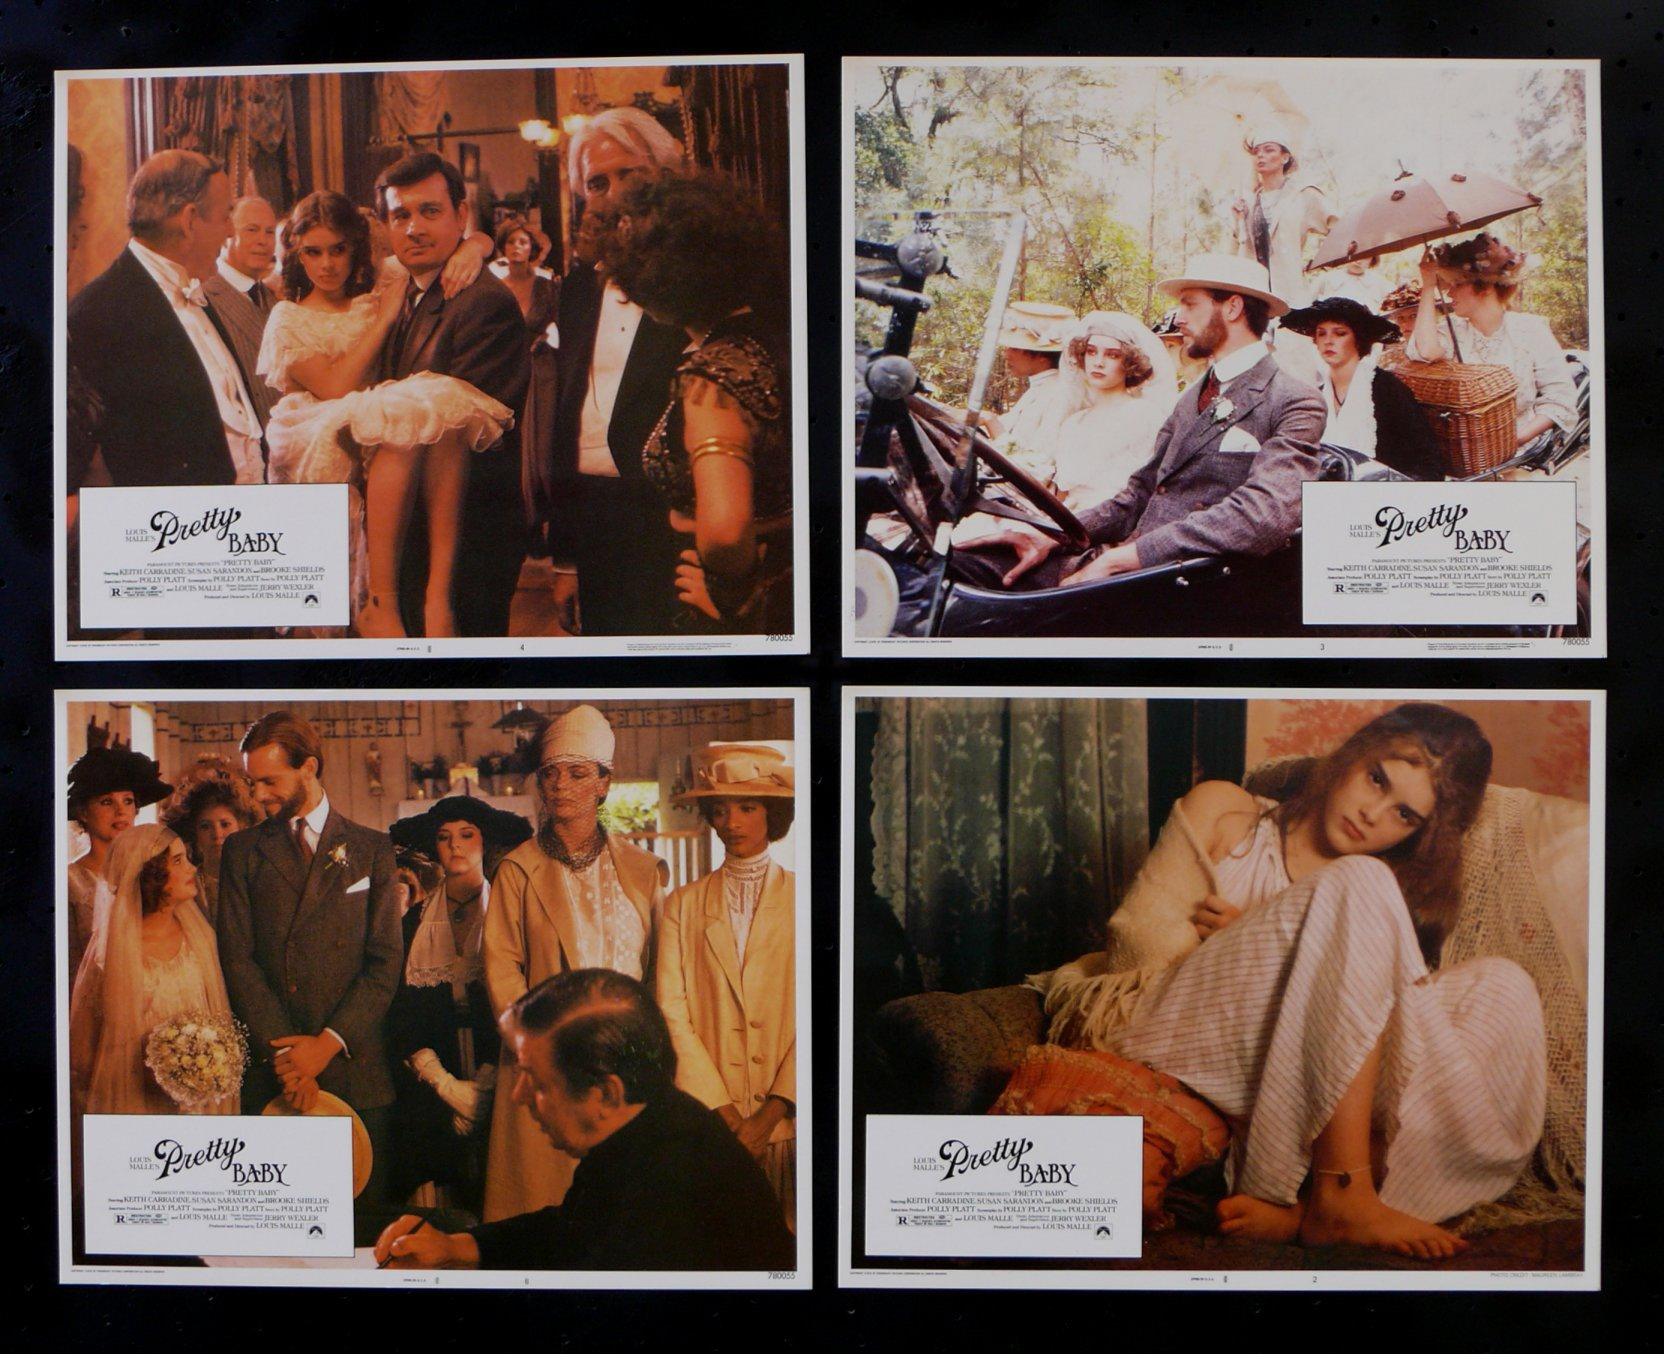 Details about PRETTY BABY * ORIG LOBBY CARD SET 1978 BROOKE SHIELDS